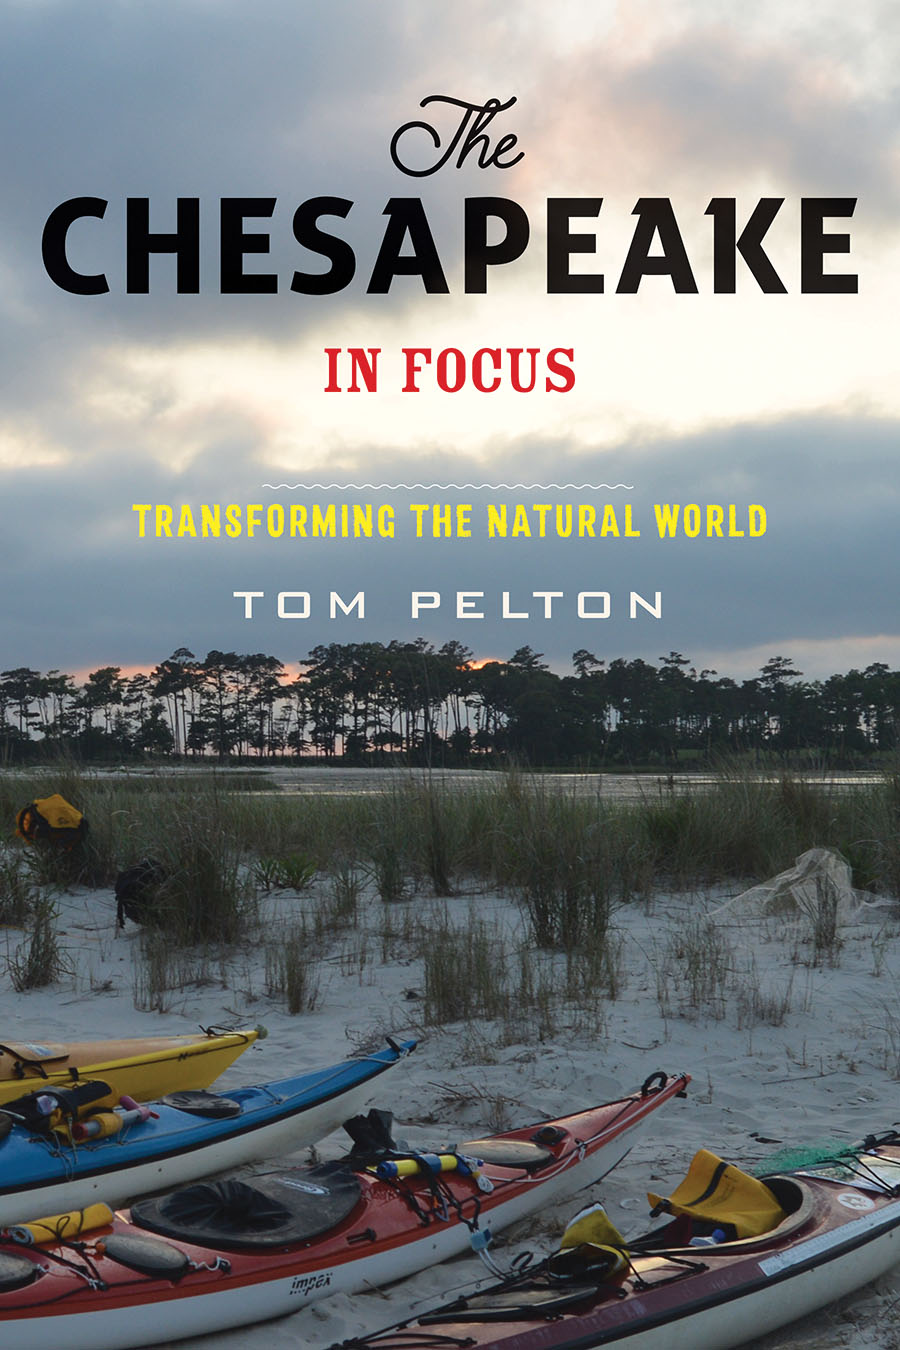 Tom Pelton's new book was published by Johns Hopkins University Press